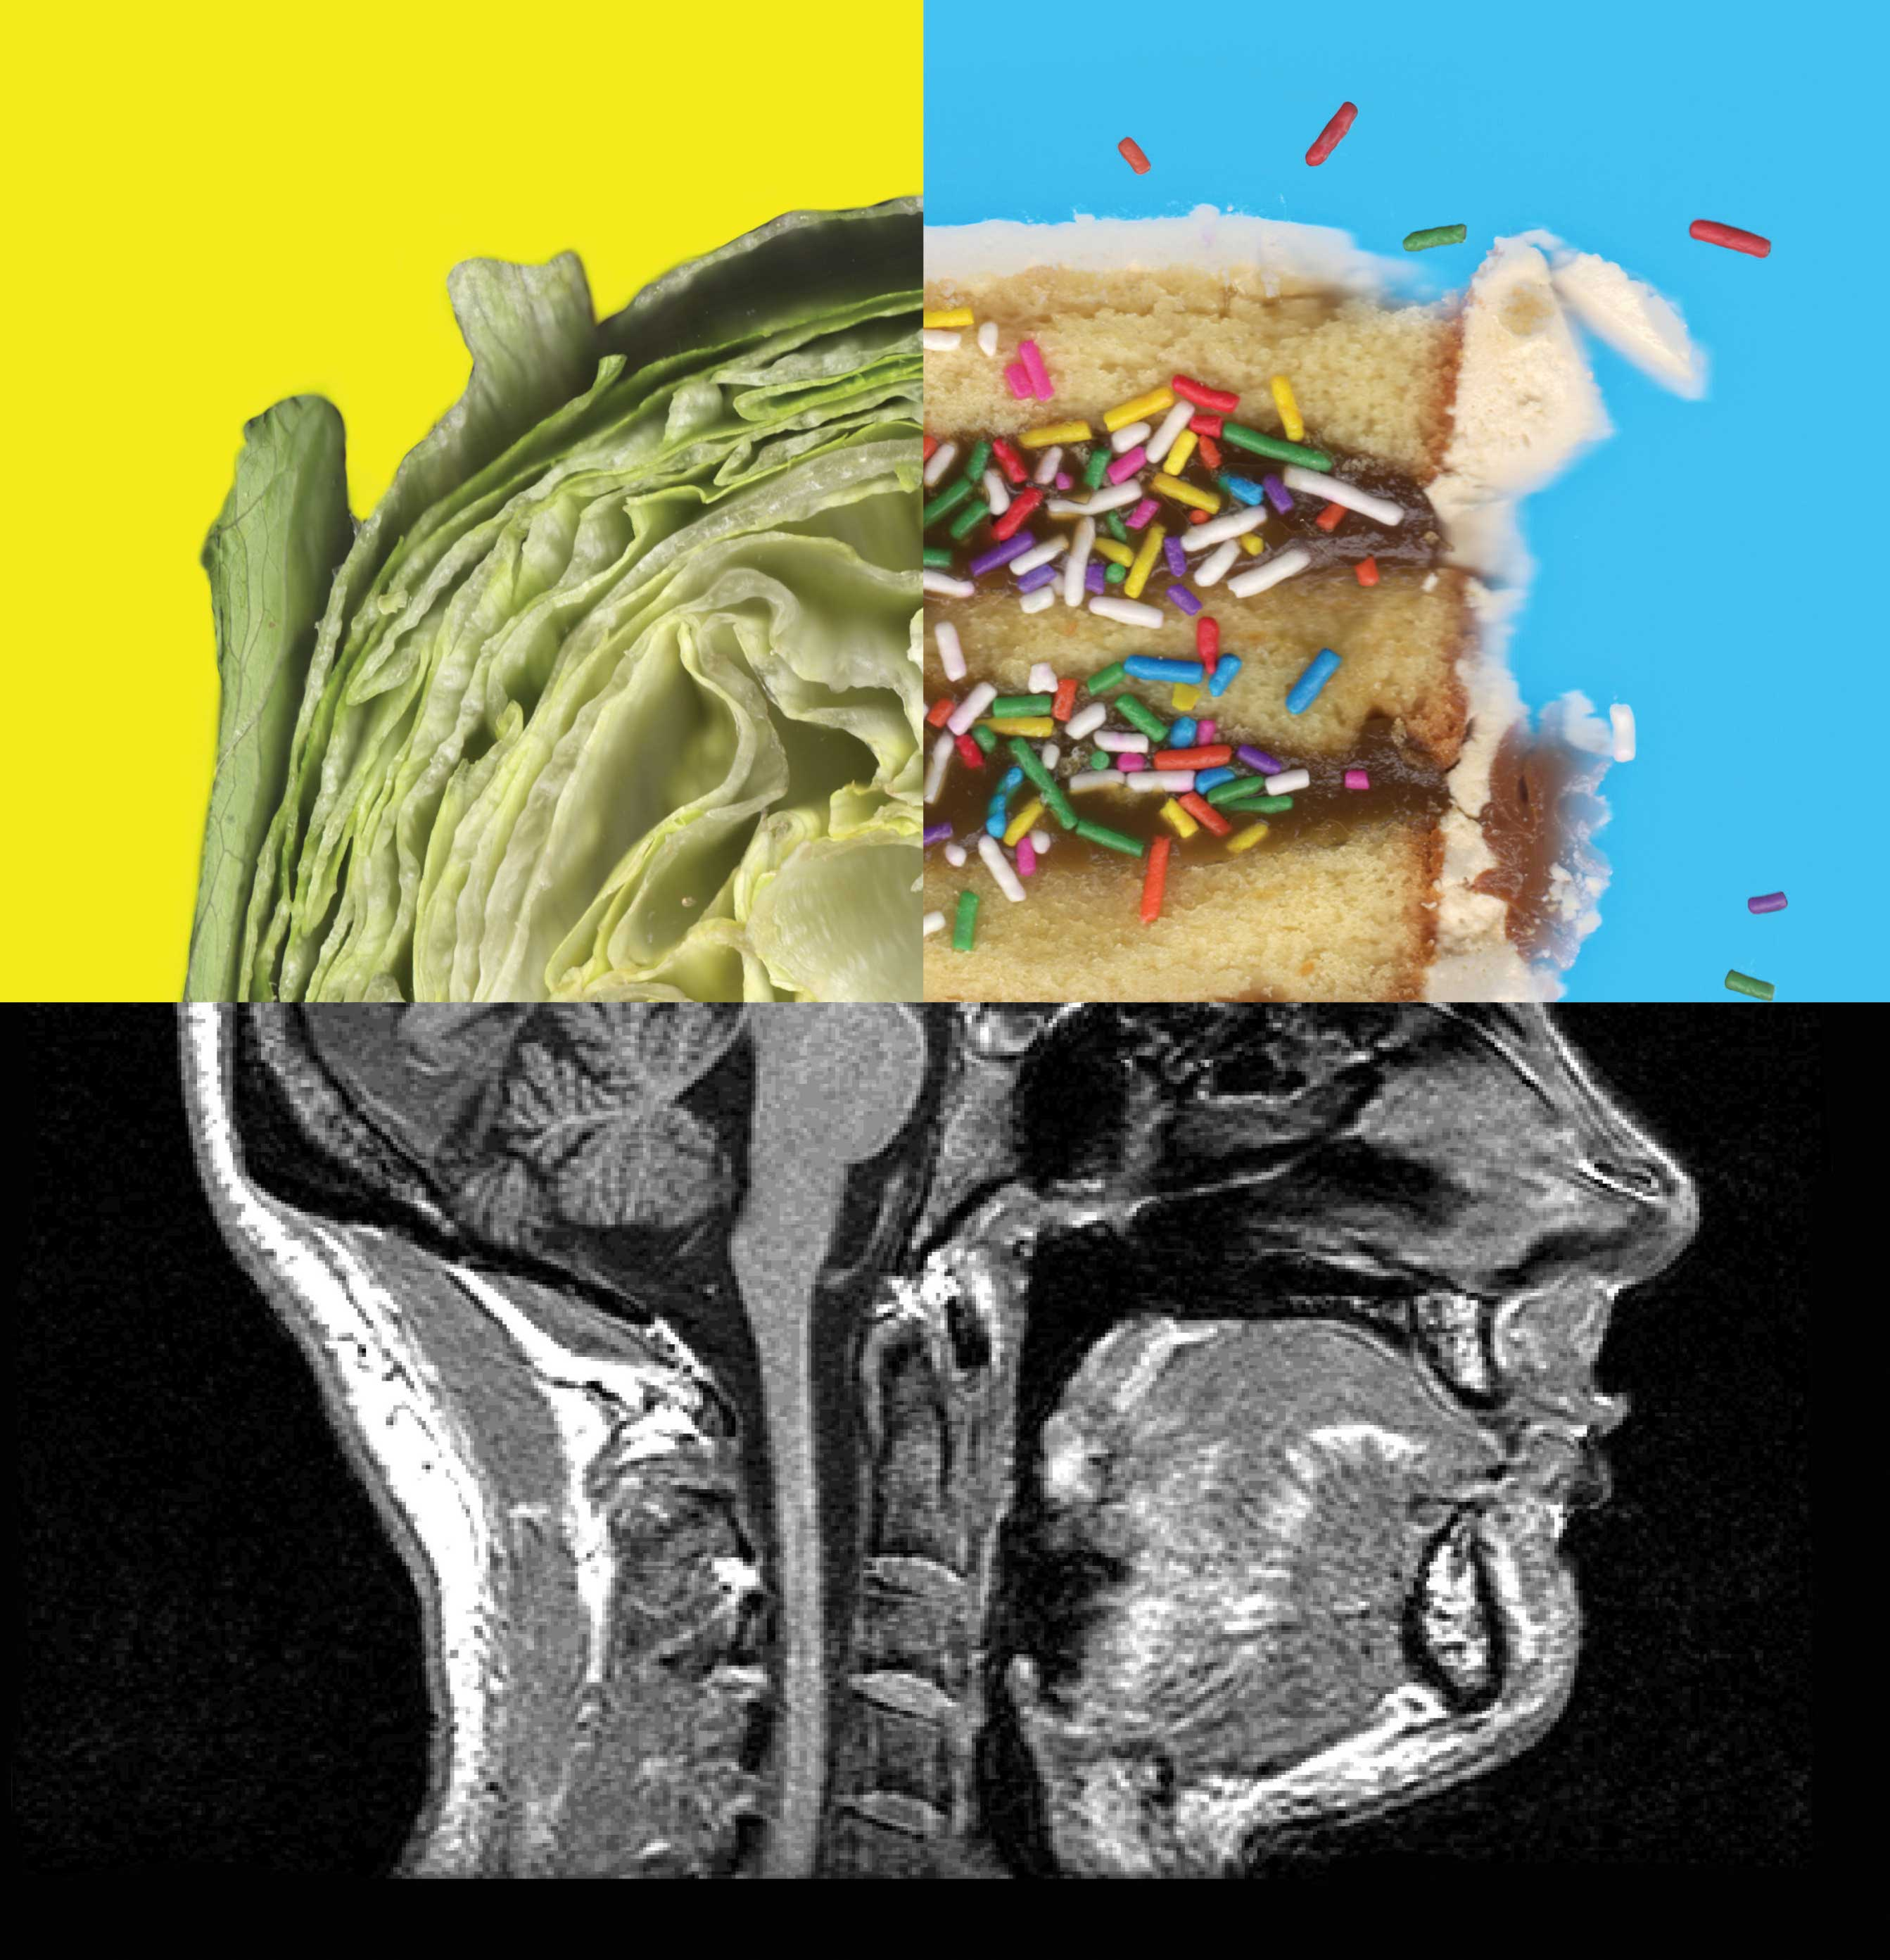 collage of human head made of lettuce, birthday cake with sprinkles, and xray of lower half of human head